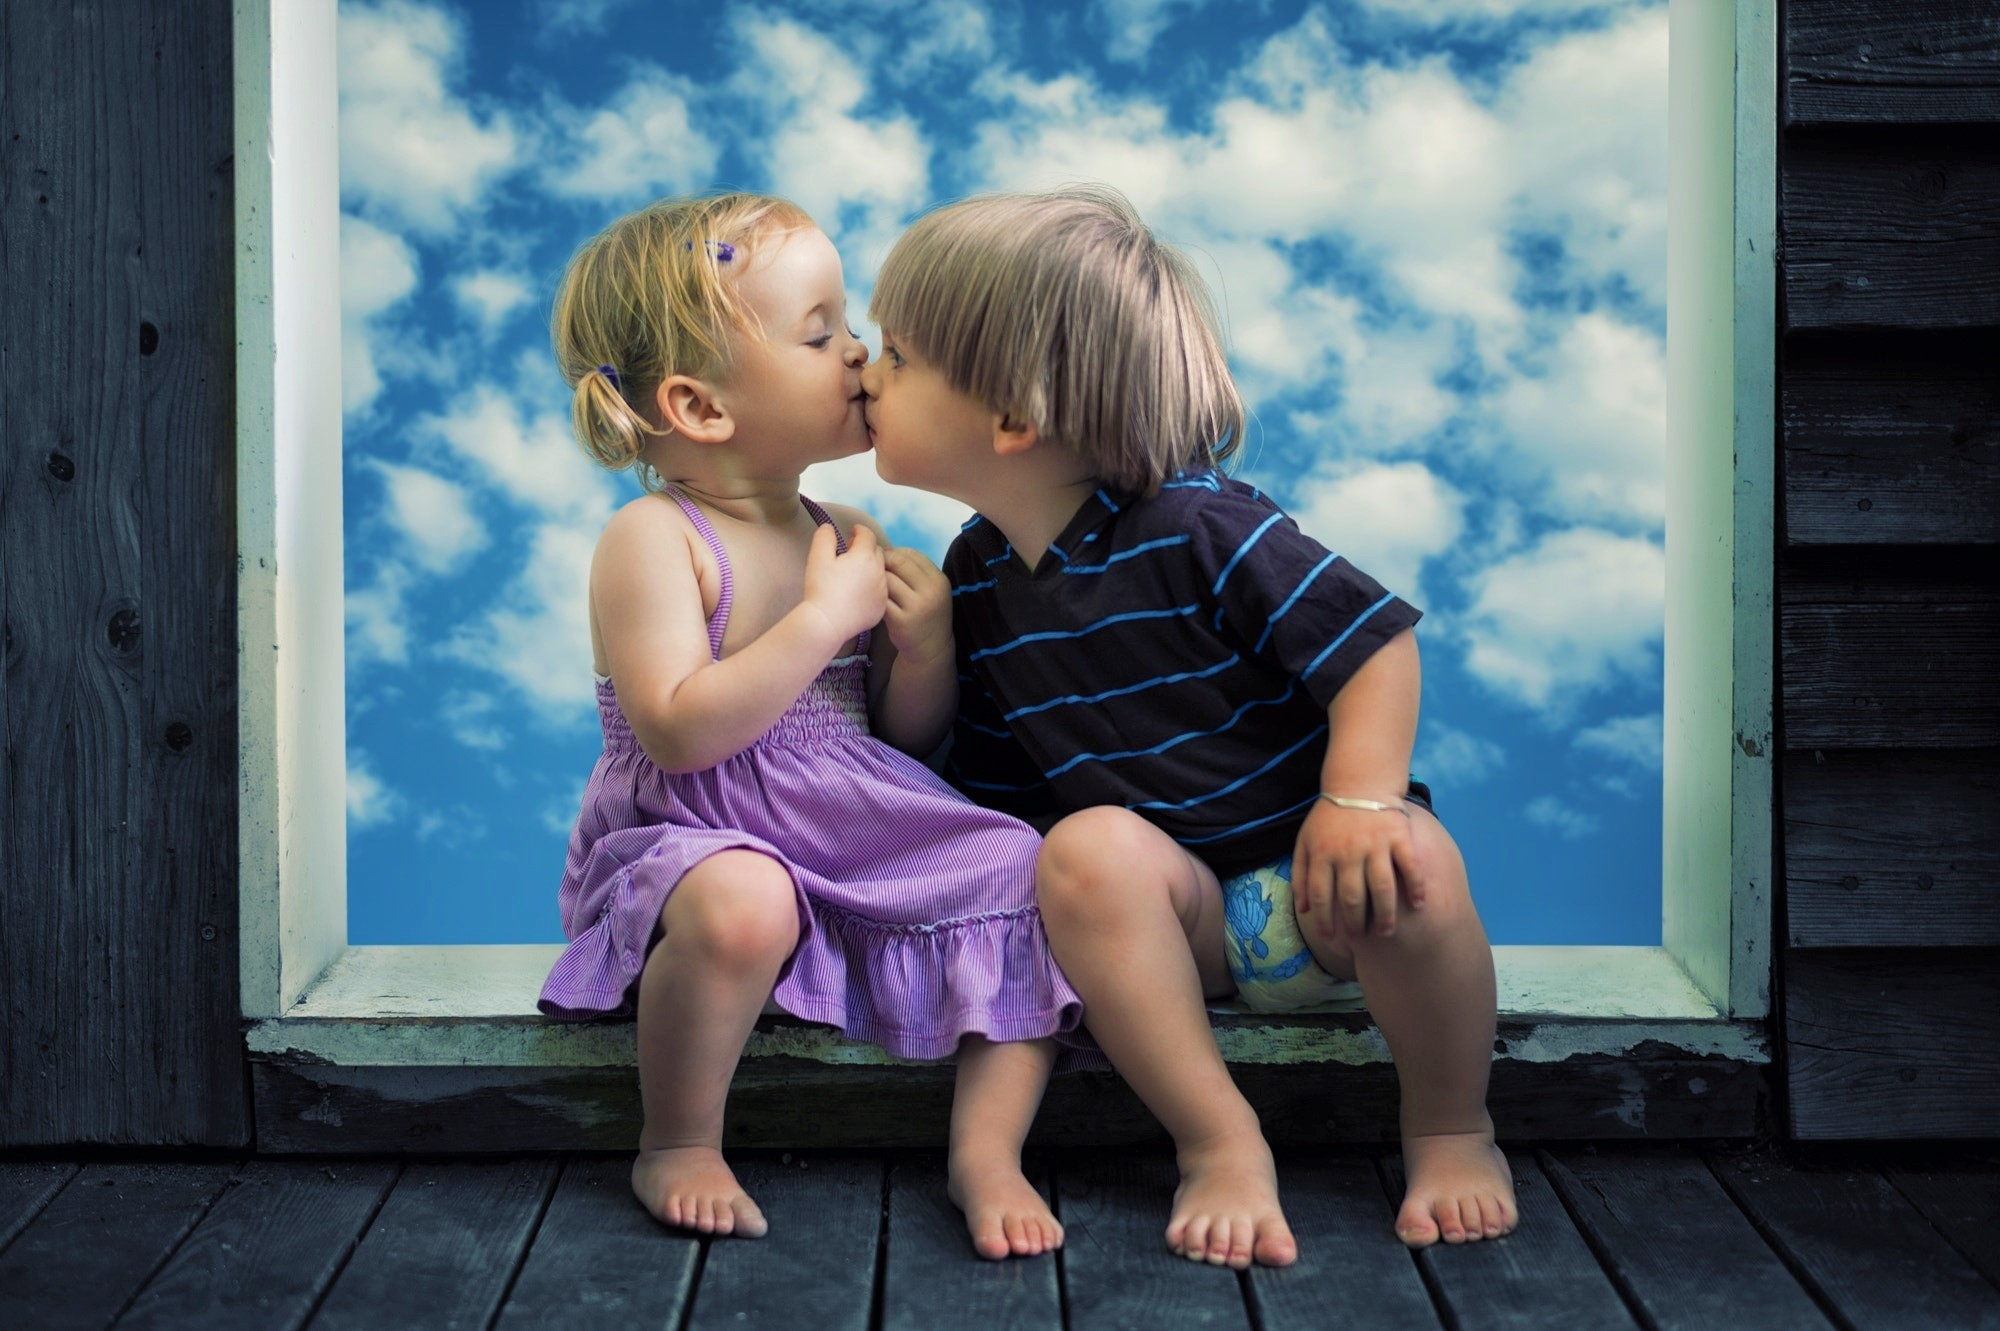 Little boy little girl cute kiss hd cute 4k wallpapers images little boy little girl cute kiss altavistaventures Images